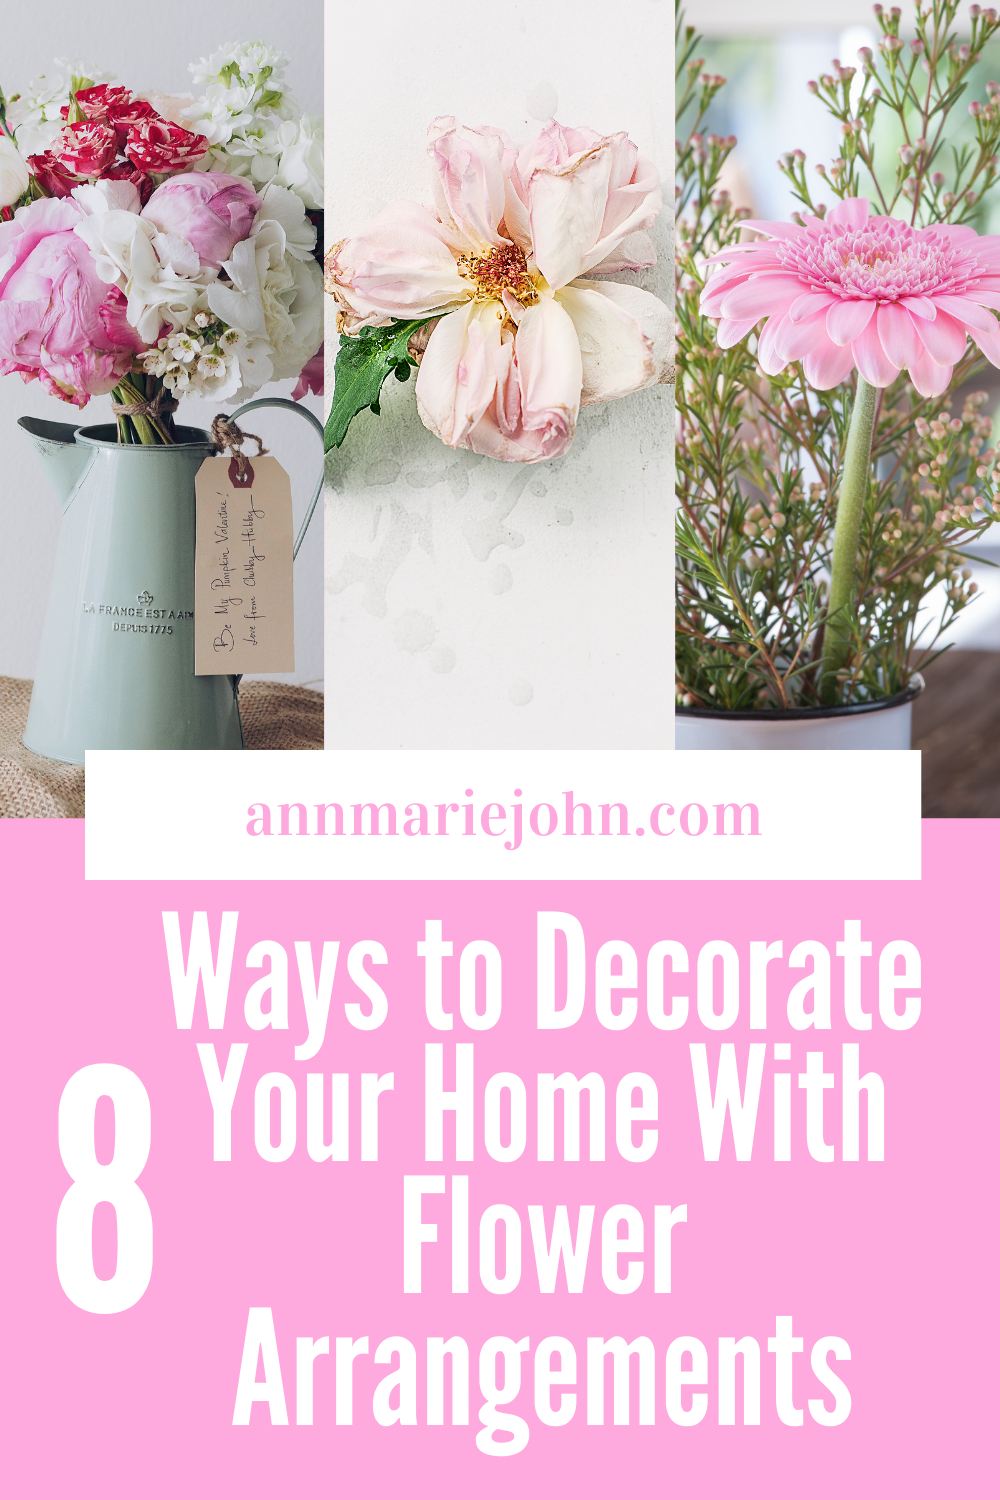 Ways to decorate your home with flowers.